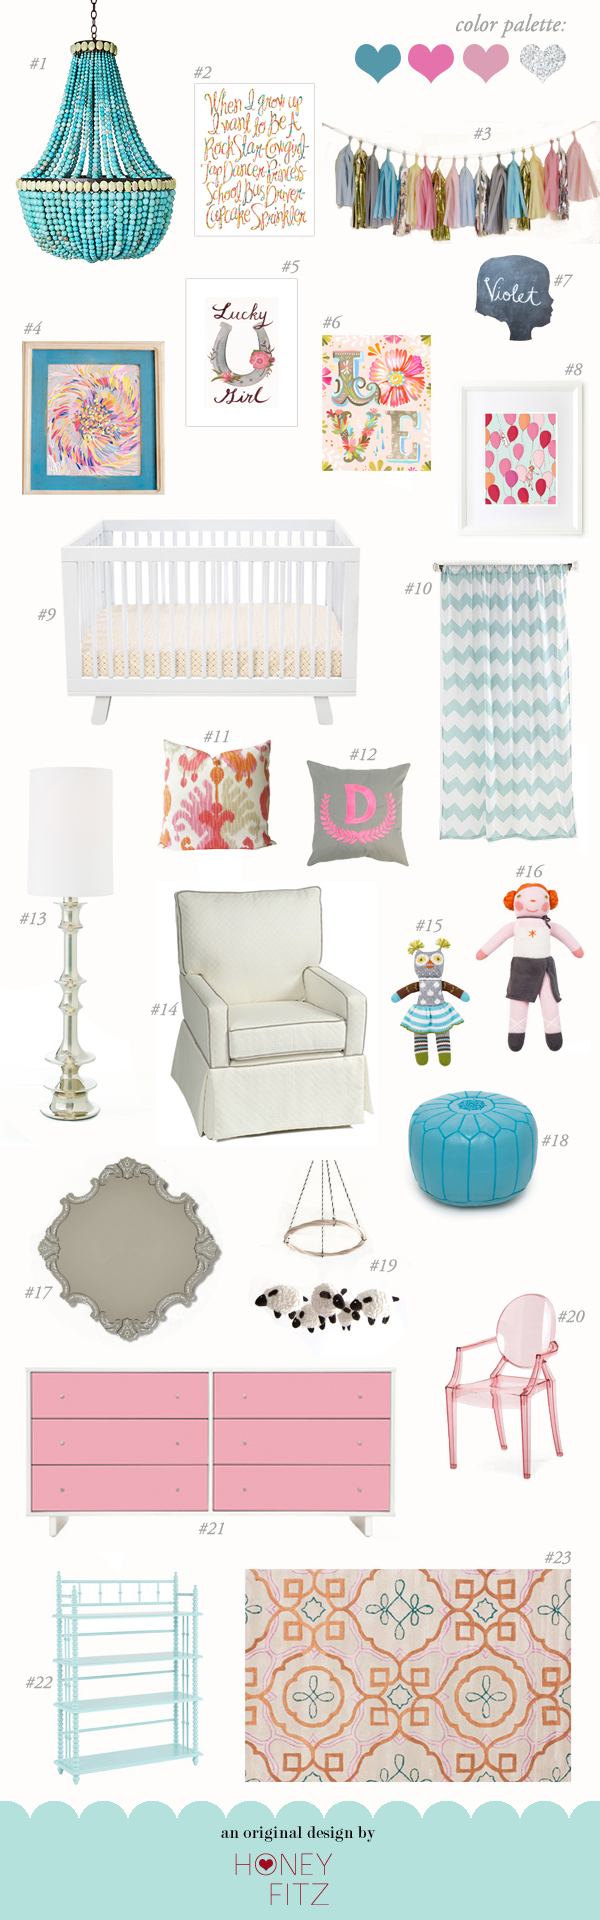 6th-street-design-dream-nursery